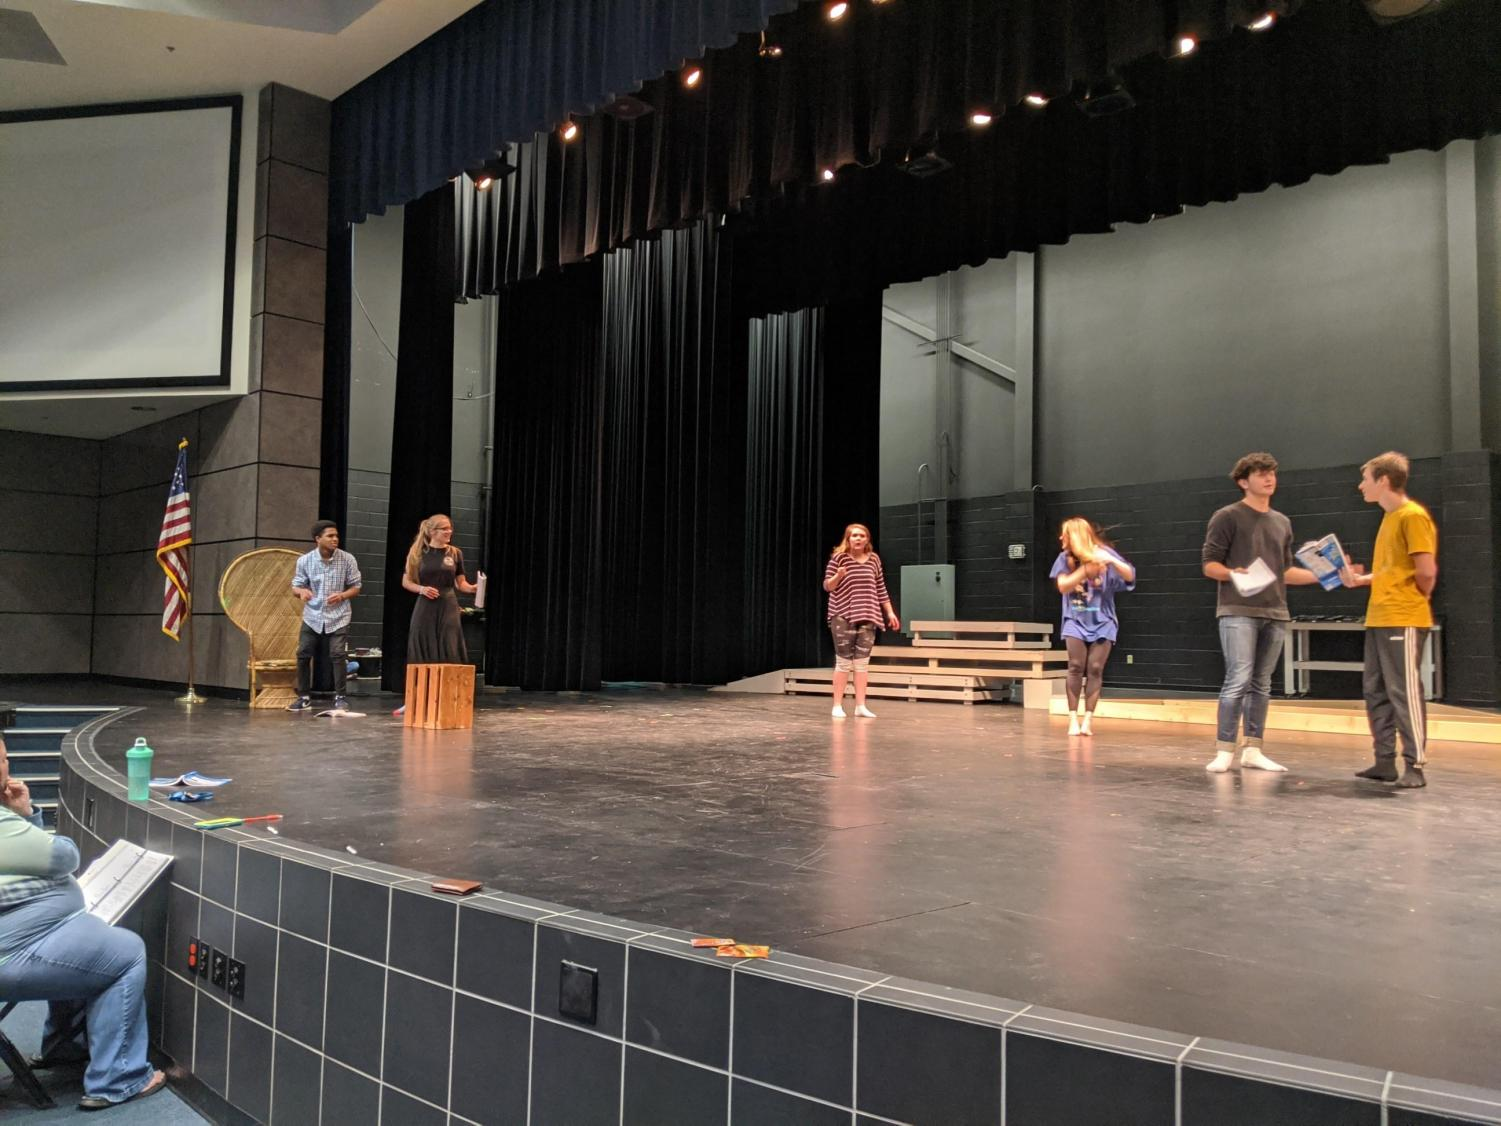 Theater+students+practice+for+the+upcoming+musical.+This+is+the+third+year+in+a+row+that+the+LHS+theater+program+has+done+this%2C+this+year+performing+their+rendition+of+The+Little+Mermaid.+